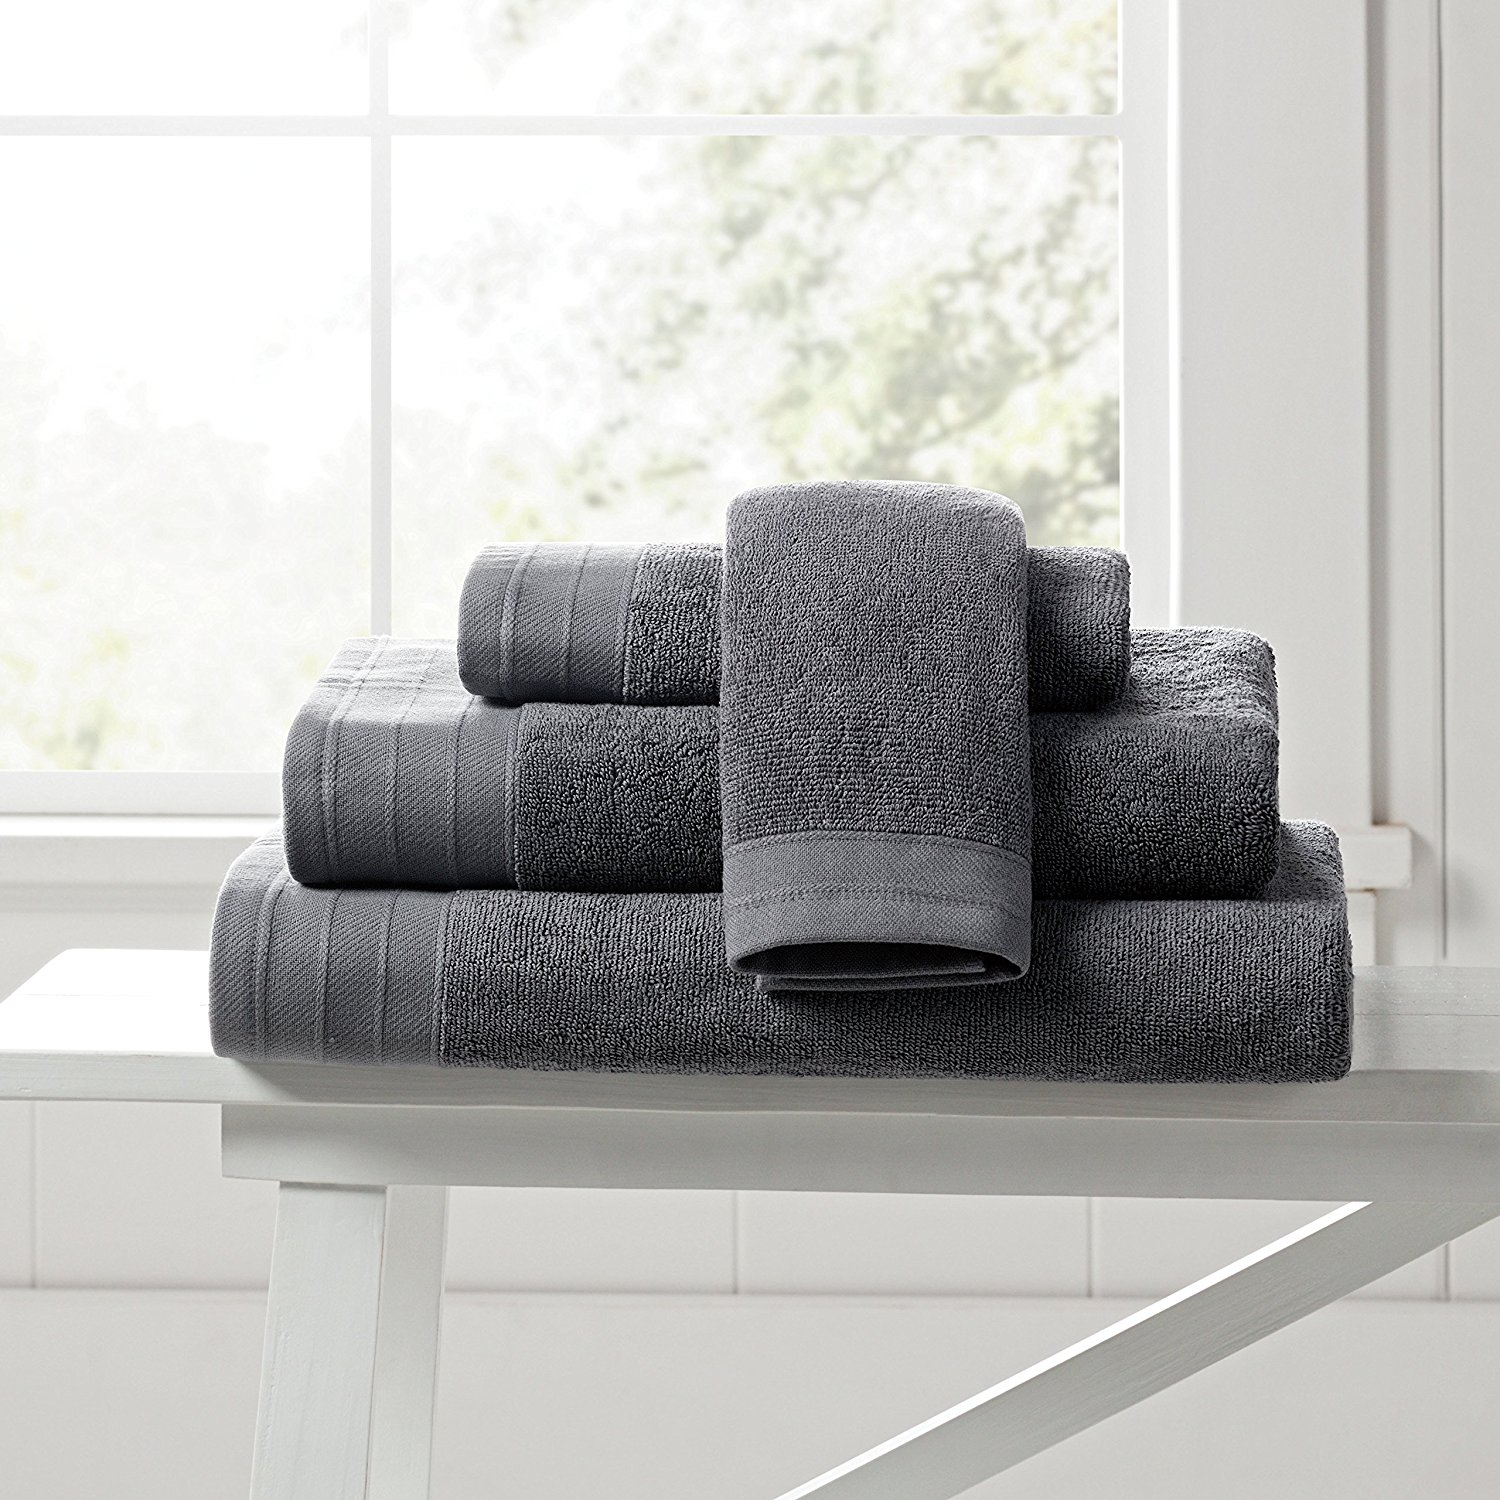 Pure Beech 3-Piece Bath Towel Set – Cotton Modal Blend - Hotel Quality, Bright, Super Soft and Highly Absorbent - Charcoal